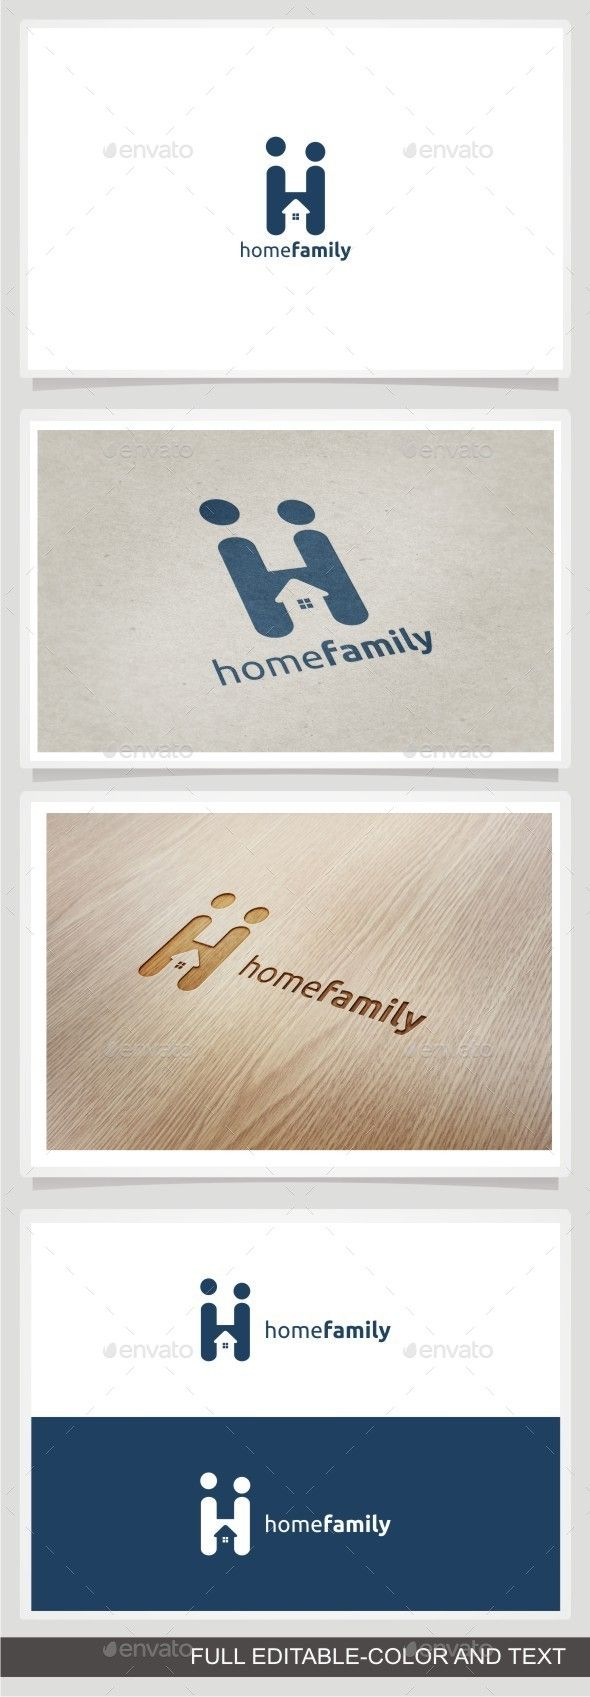 Home remodeling logo remodeling logo clipart - Home Family Logo Design Template Vector Logotype Download It Here Http